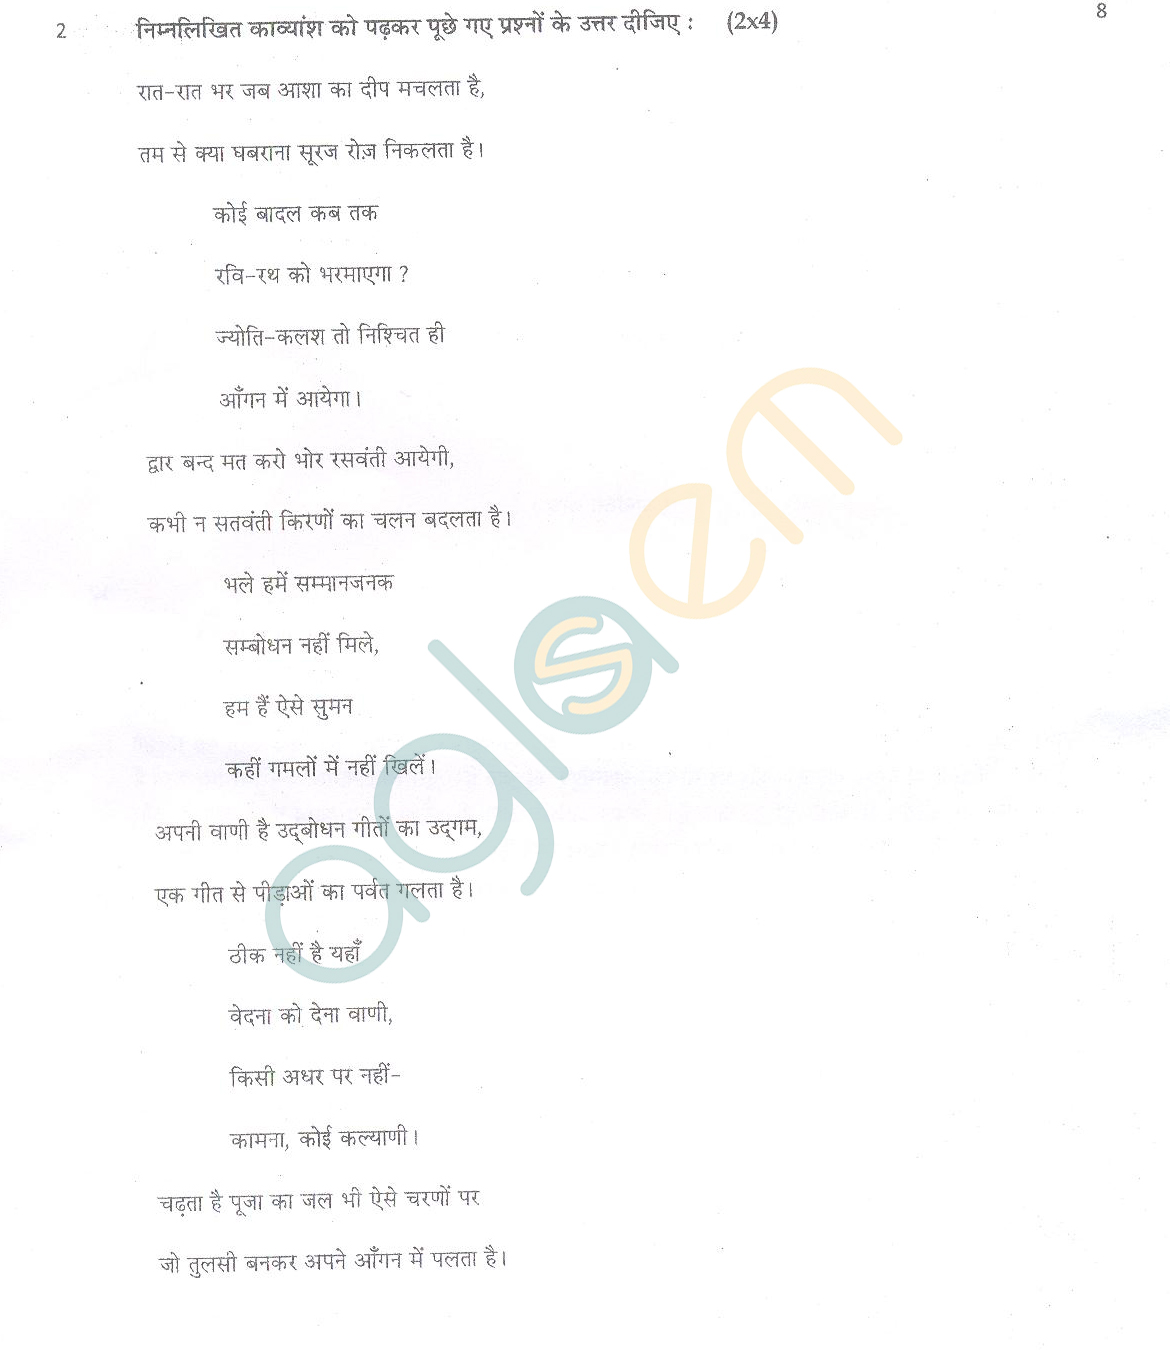 CBSE Class 10 SA2 Question Paper